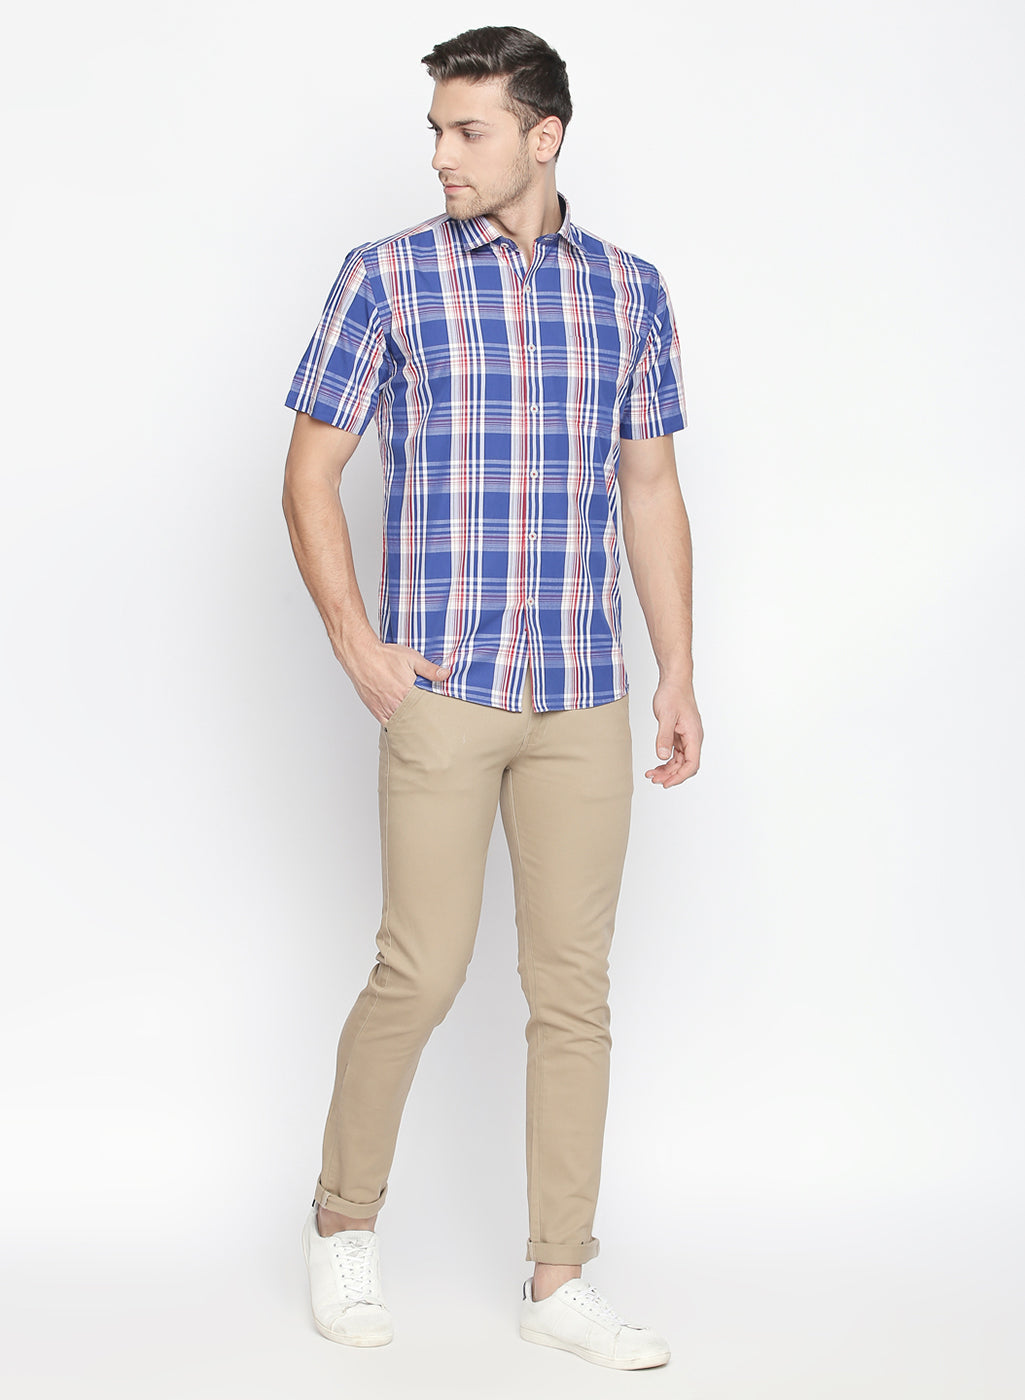 ZIDO Slim fit COTTON Checkered Shirt for Men's BTCH1426